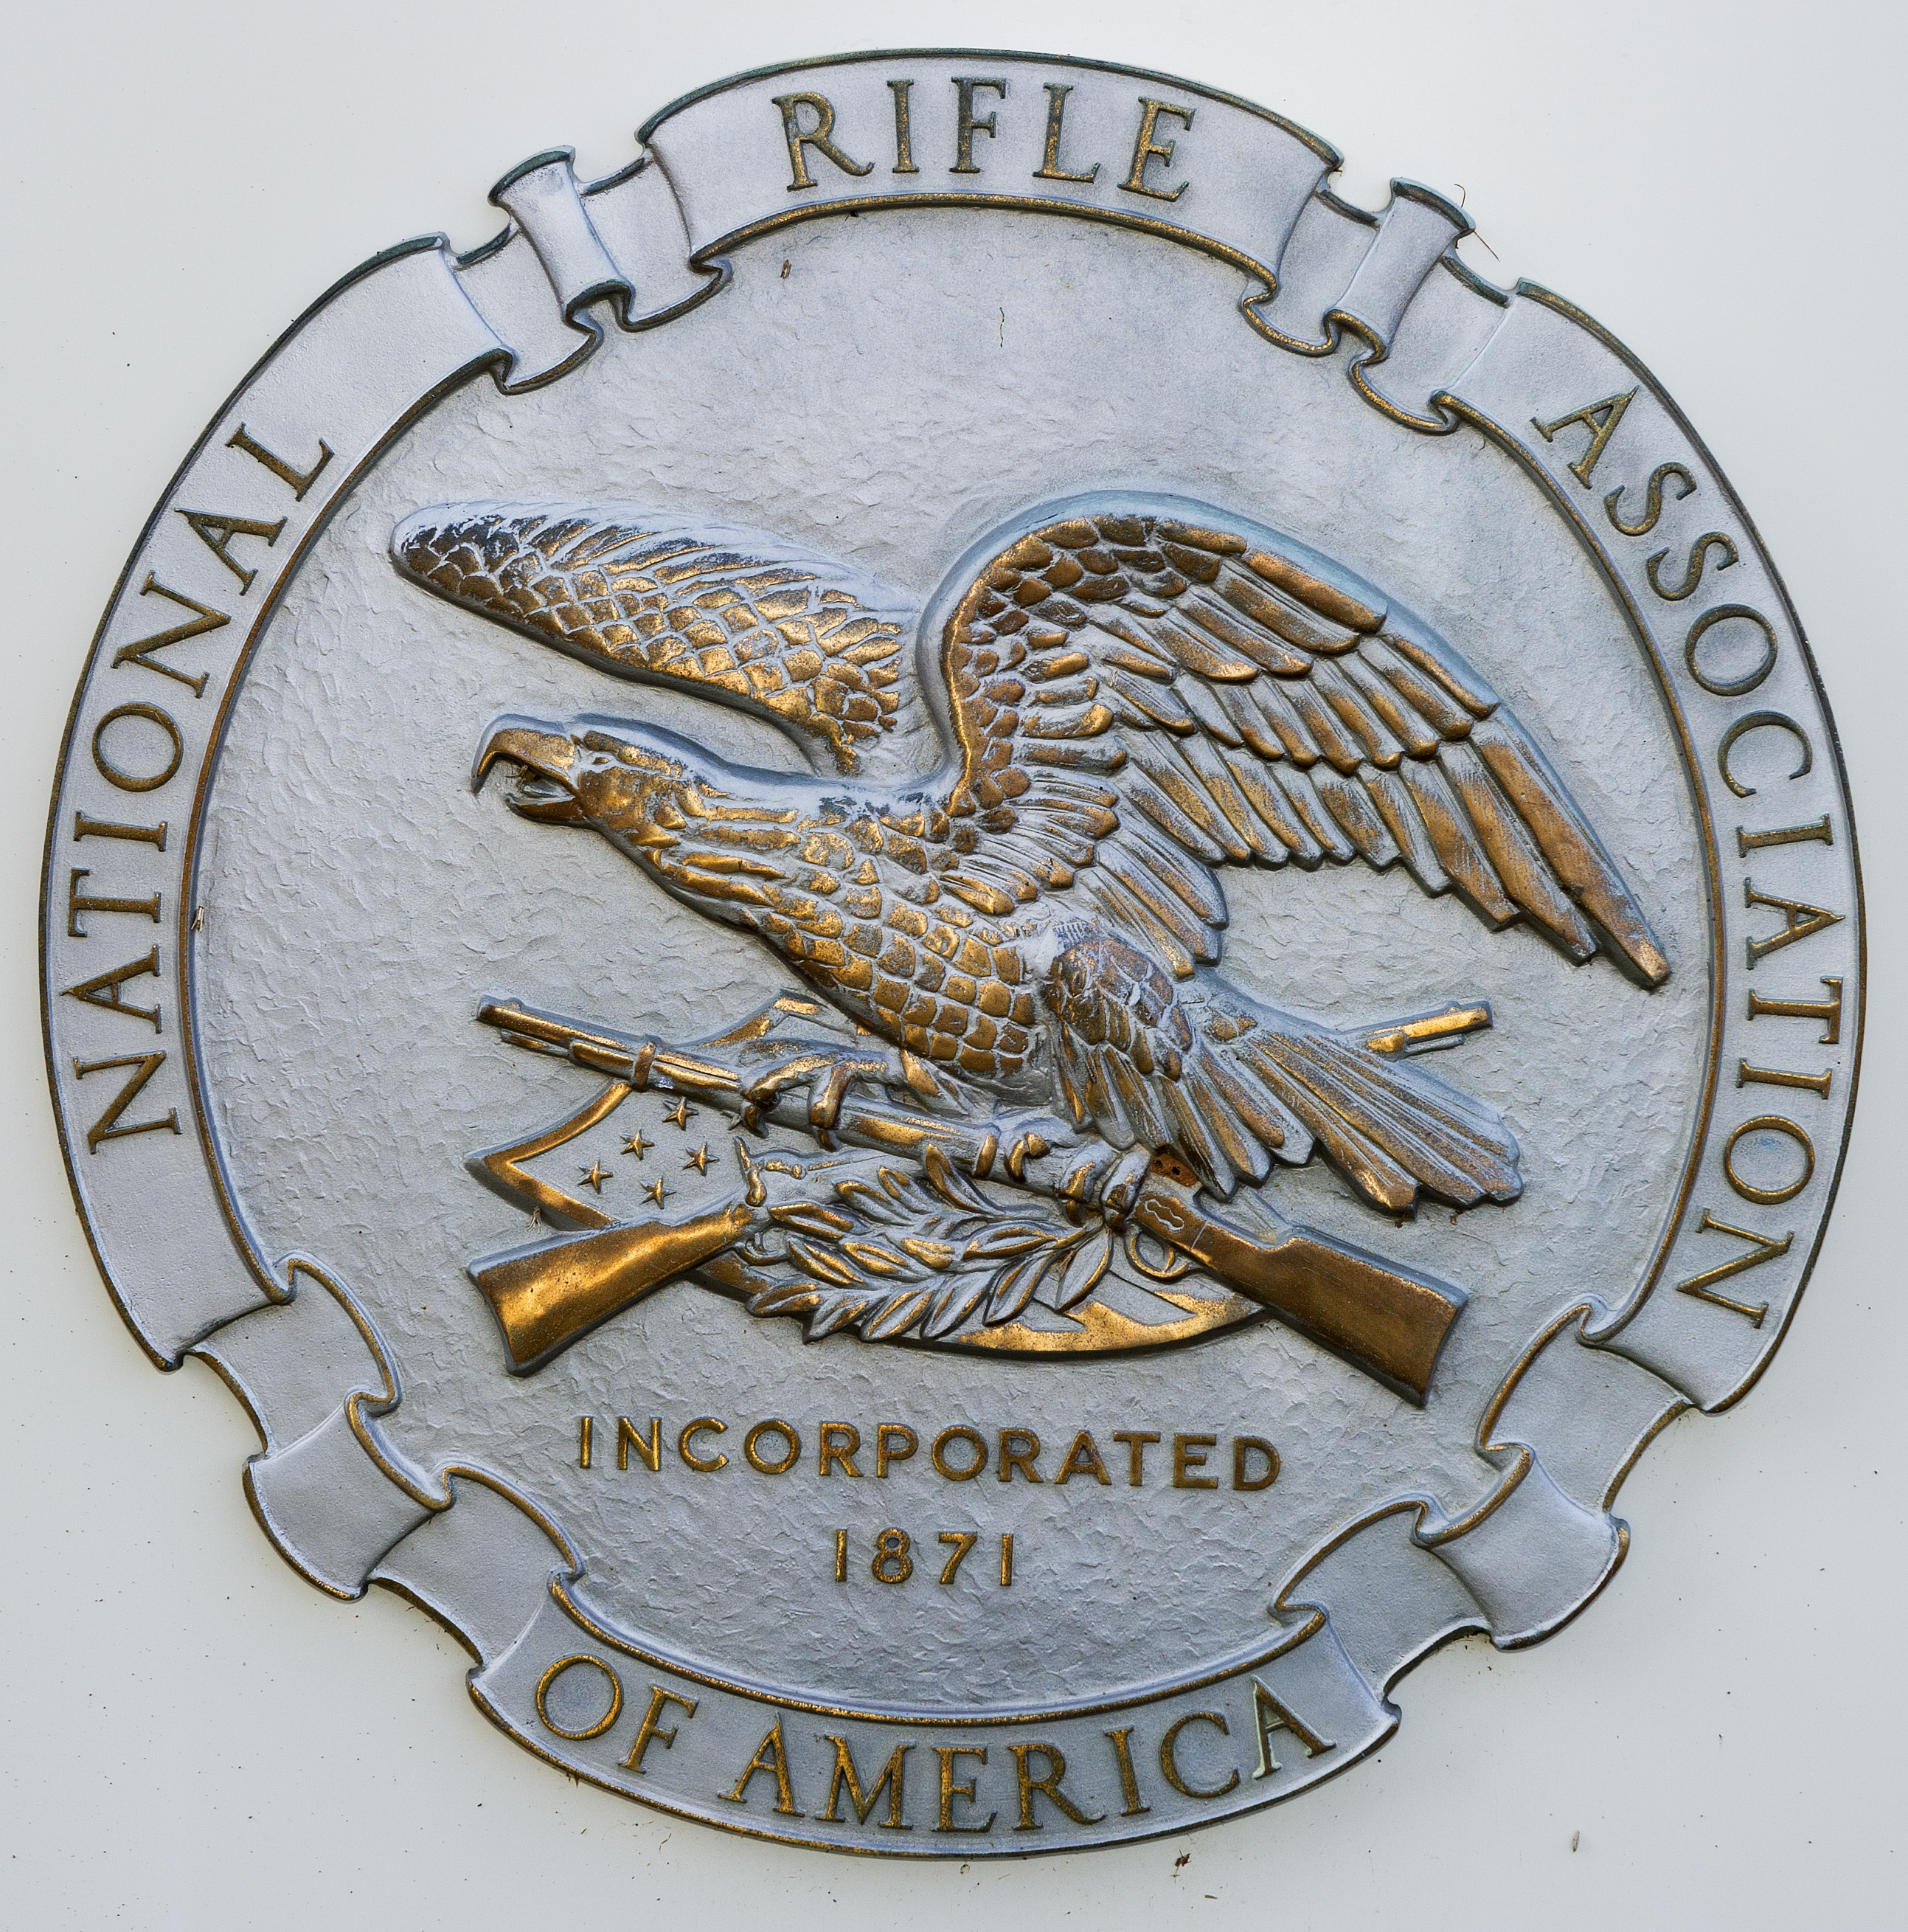 The National Rifle Association logo is seen at its headquarters in Fairfax, Va., on March 14, 2013.